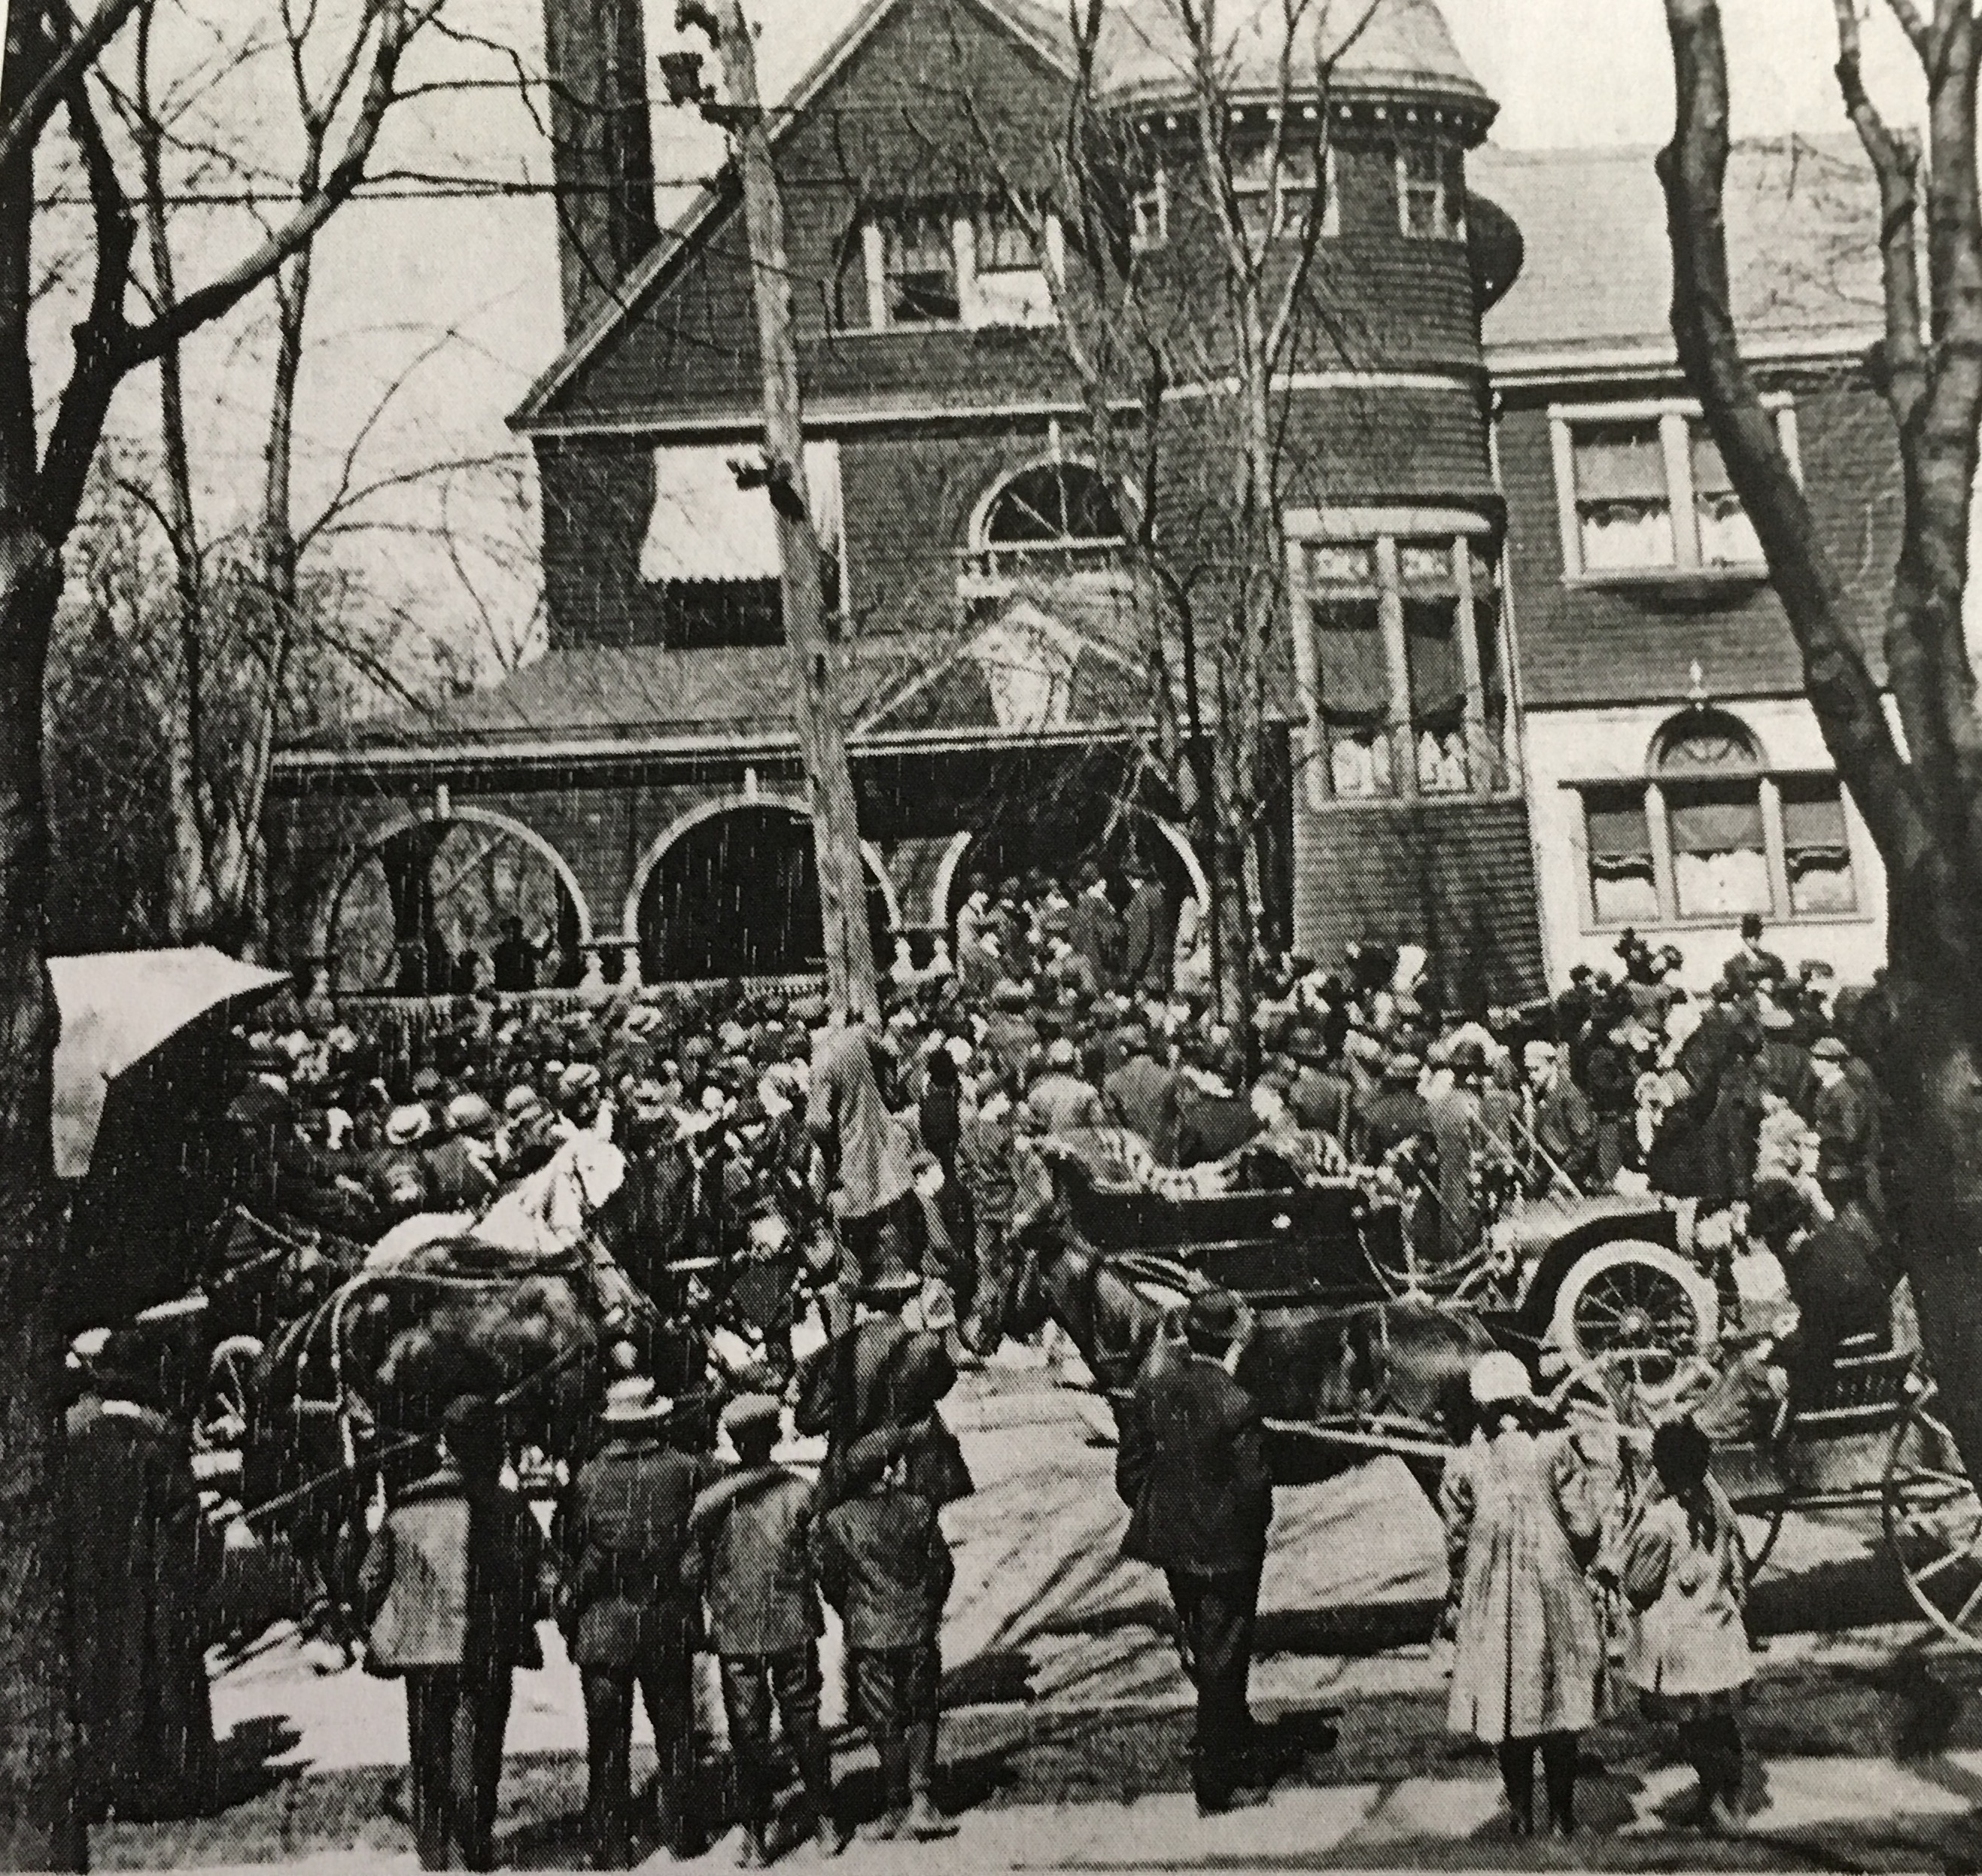 The arrival of Billy Whitla at his parent's Mansion after being kidnapped in 1909.